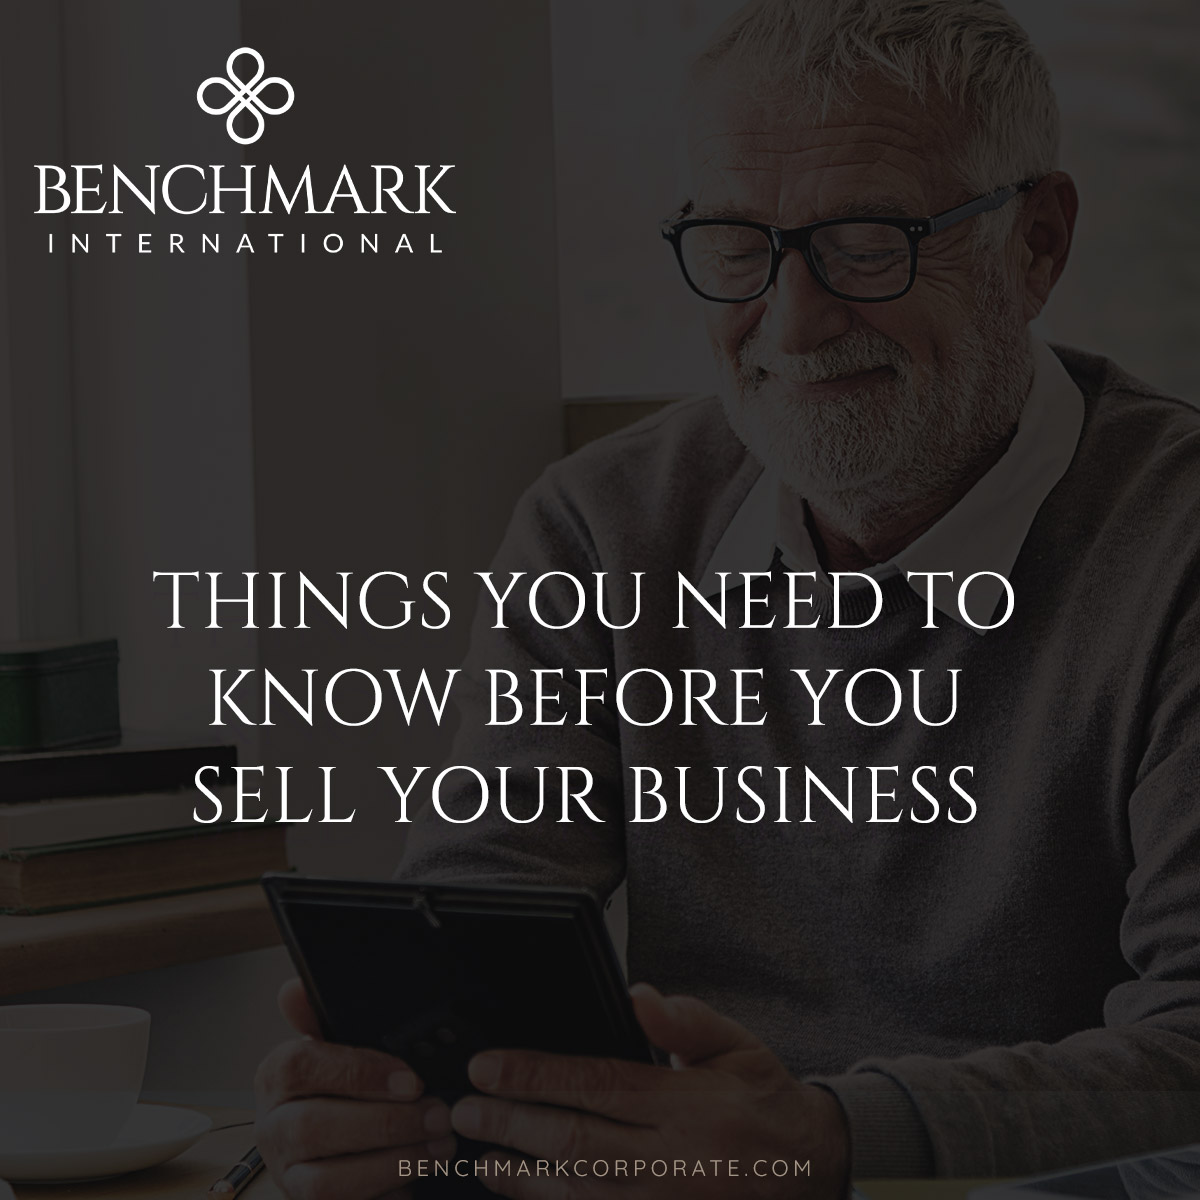 Things_to_Know_Before_Sell_Business-Social